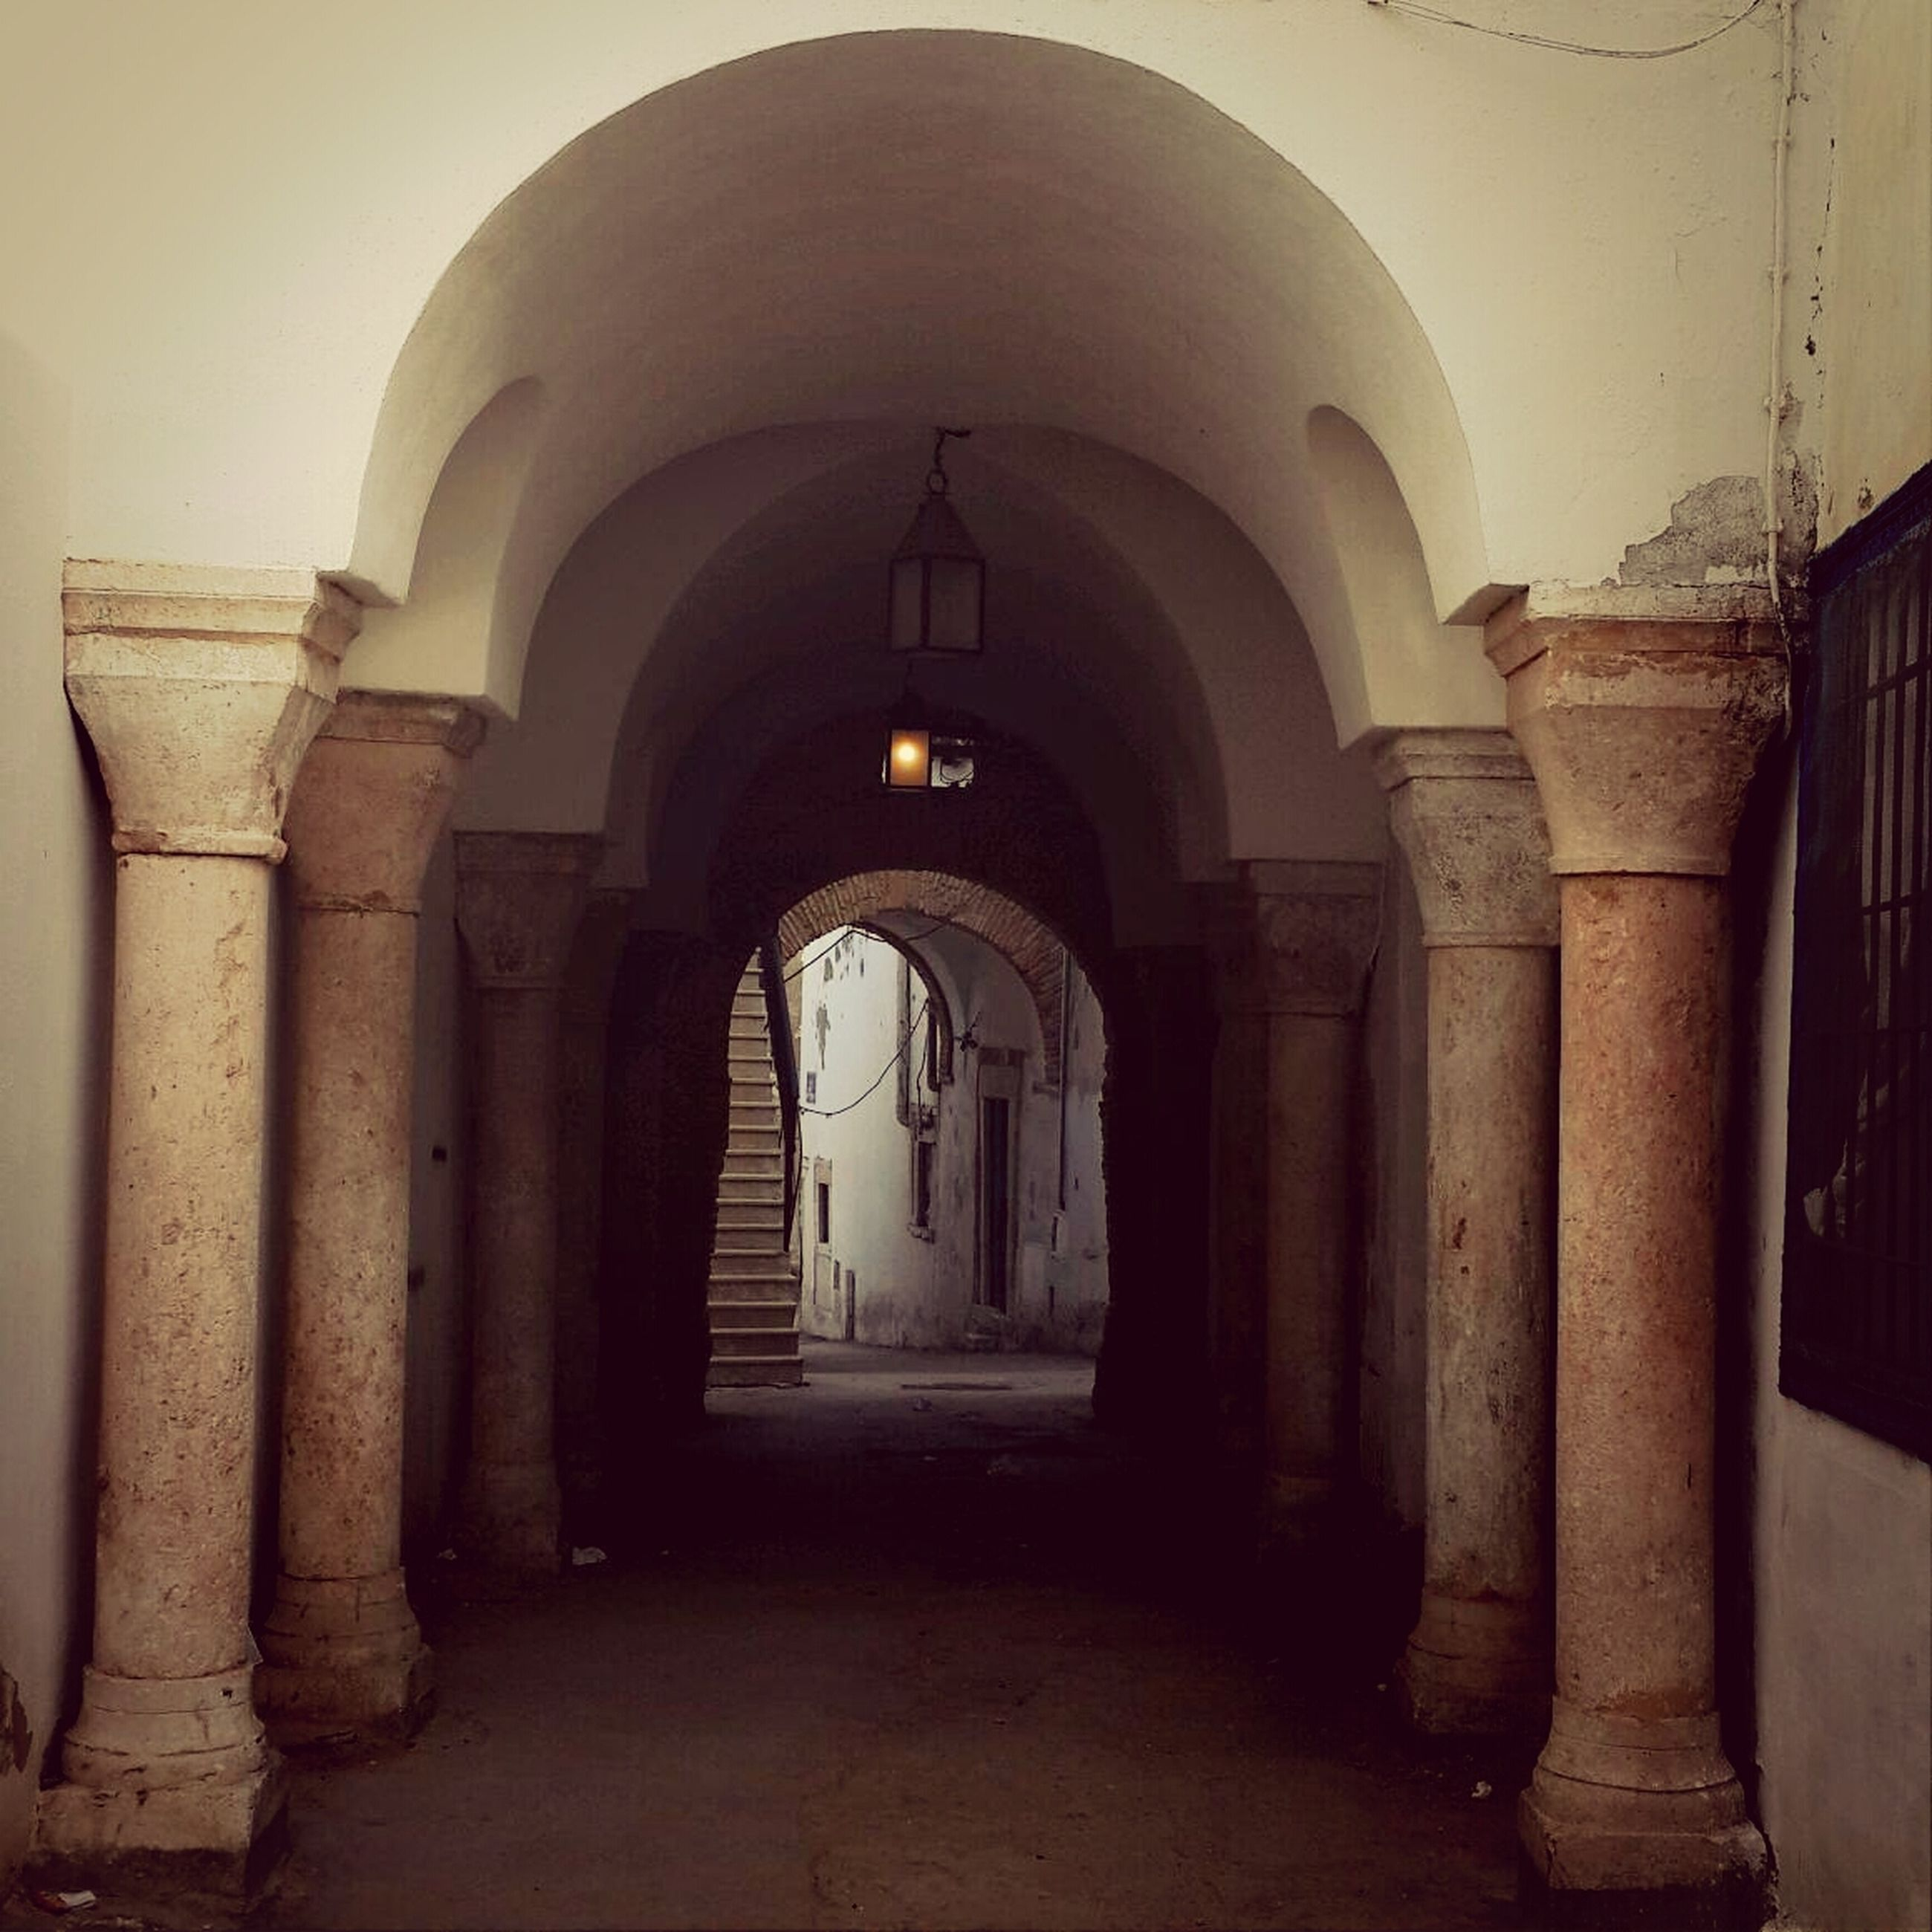 arch, architecture, built structure, religion, place of worship, church, spirituality, indoors, history, entrance, architectural column, building exterior, corridor, cathedral, travel destinations, column, archway, famous place